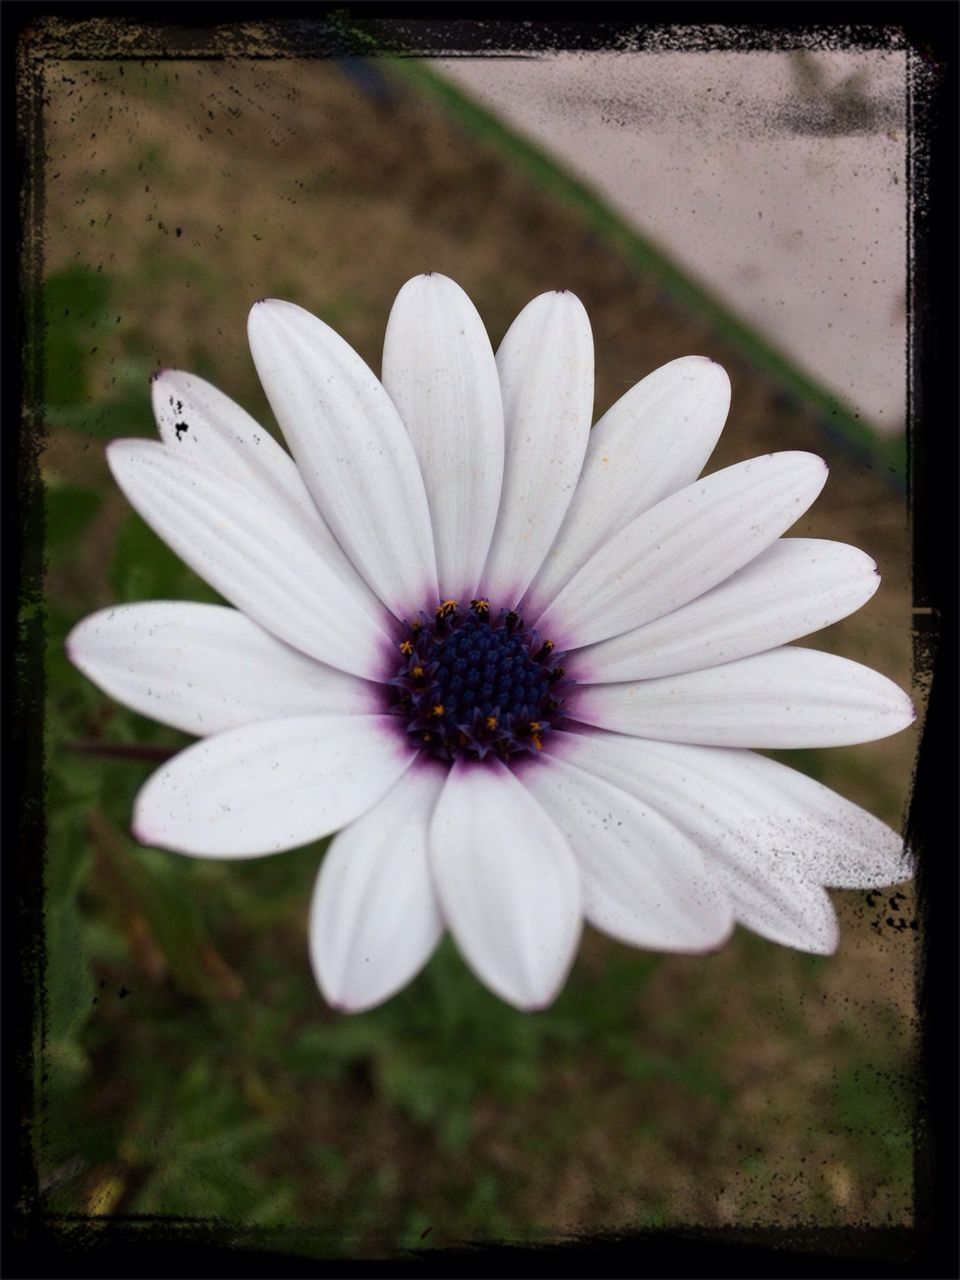 flower, petal, nature, fragility, beauty in nature, flower head, freshness, plant, blooming, no people, growth, outdoors, day, osteospermum, close-up